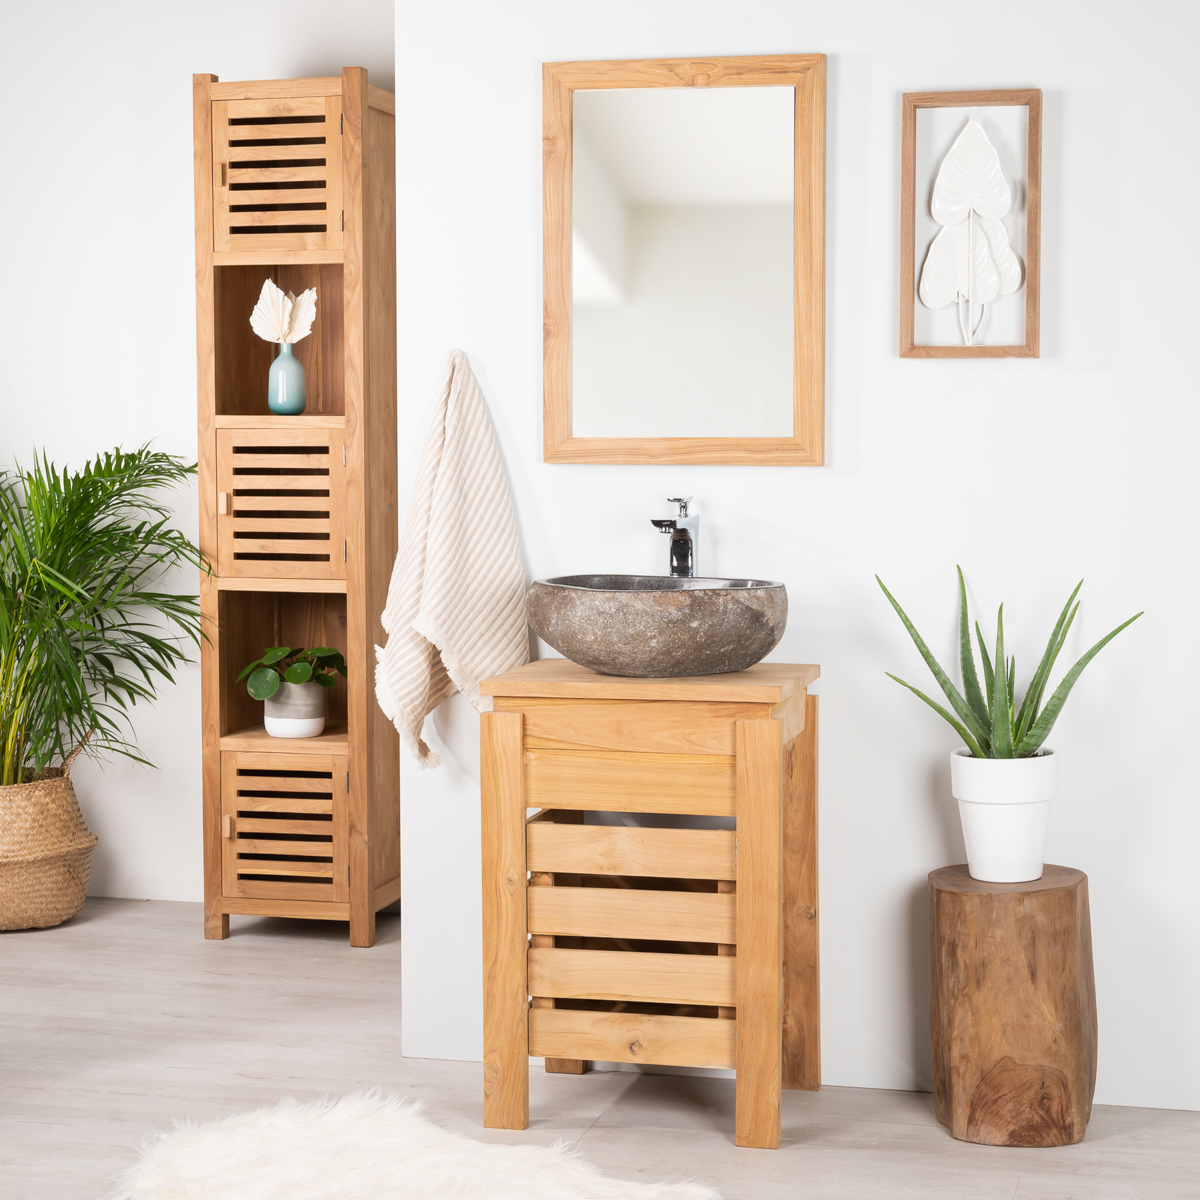 Meuble sous vasque simple vasque en bois teck massif zen rectangle naturel l 50 cm - Meuble salle de bain en promotion ...